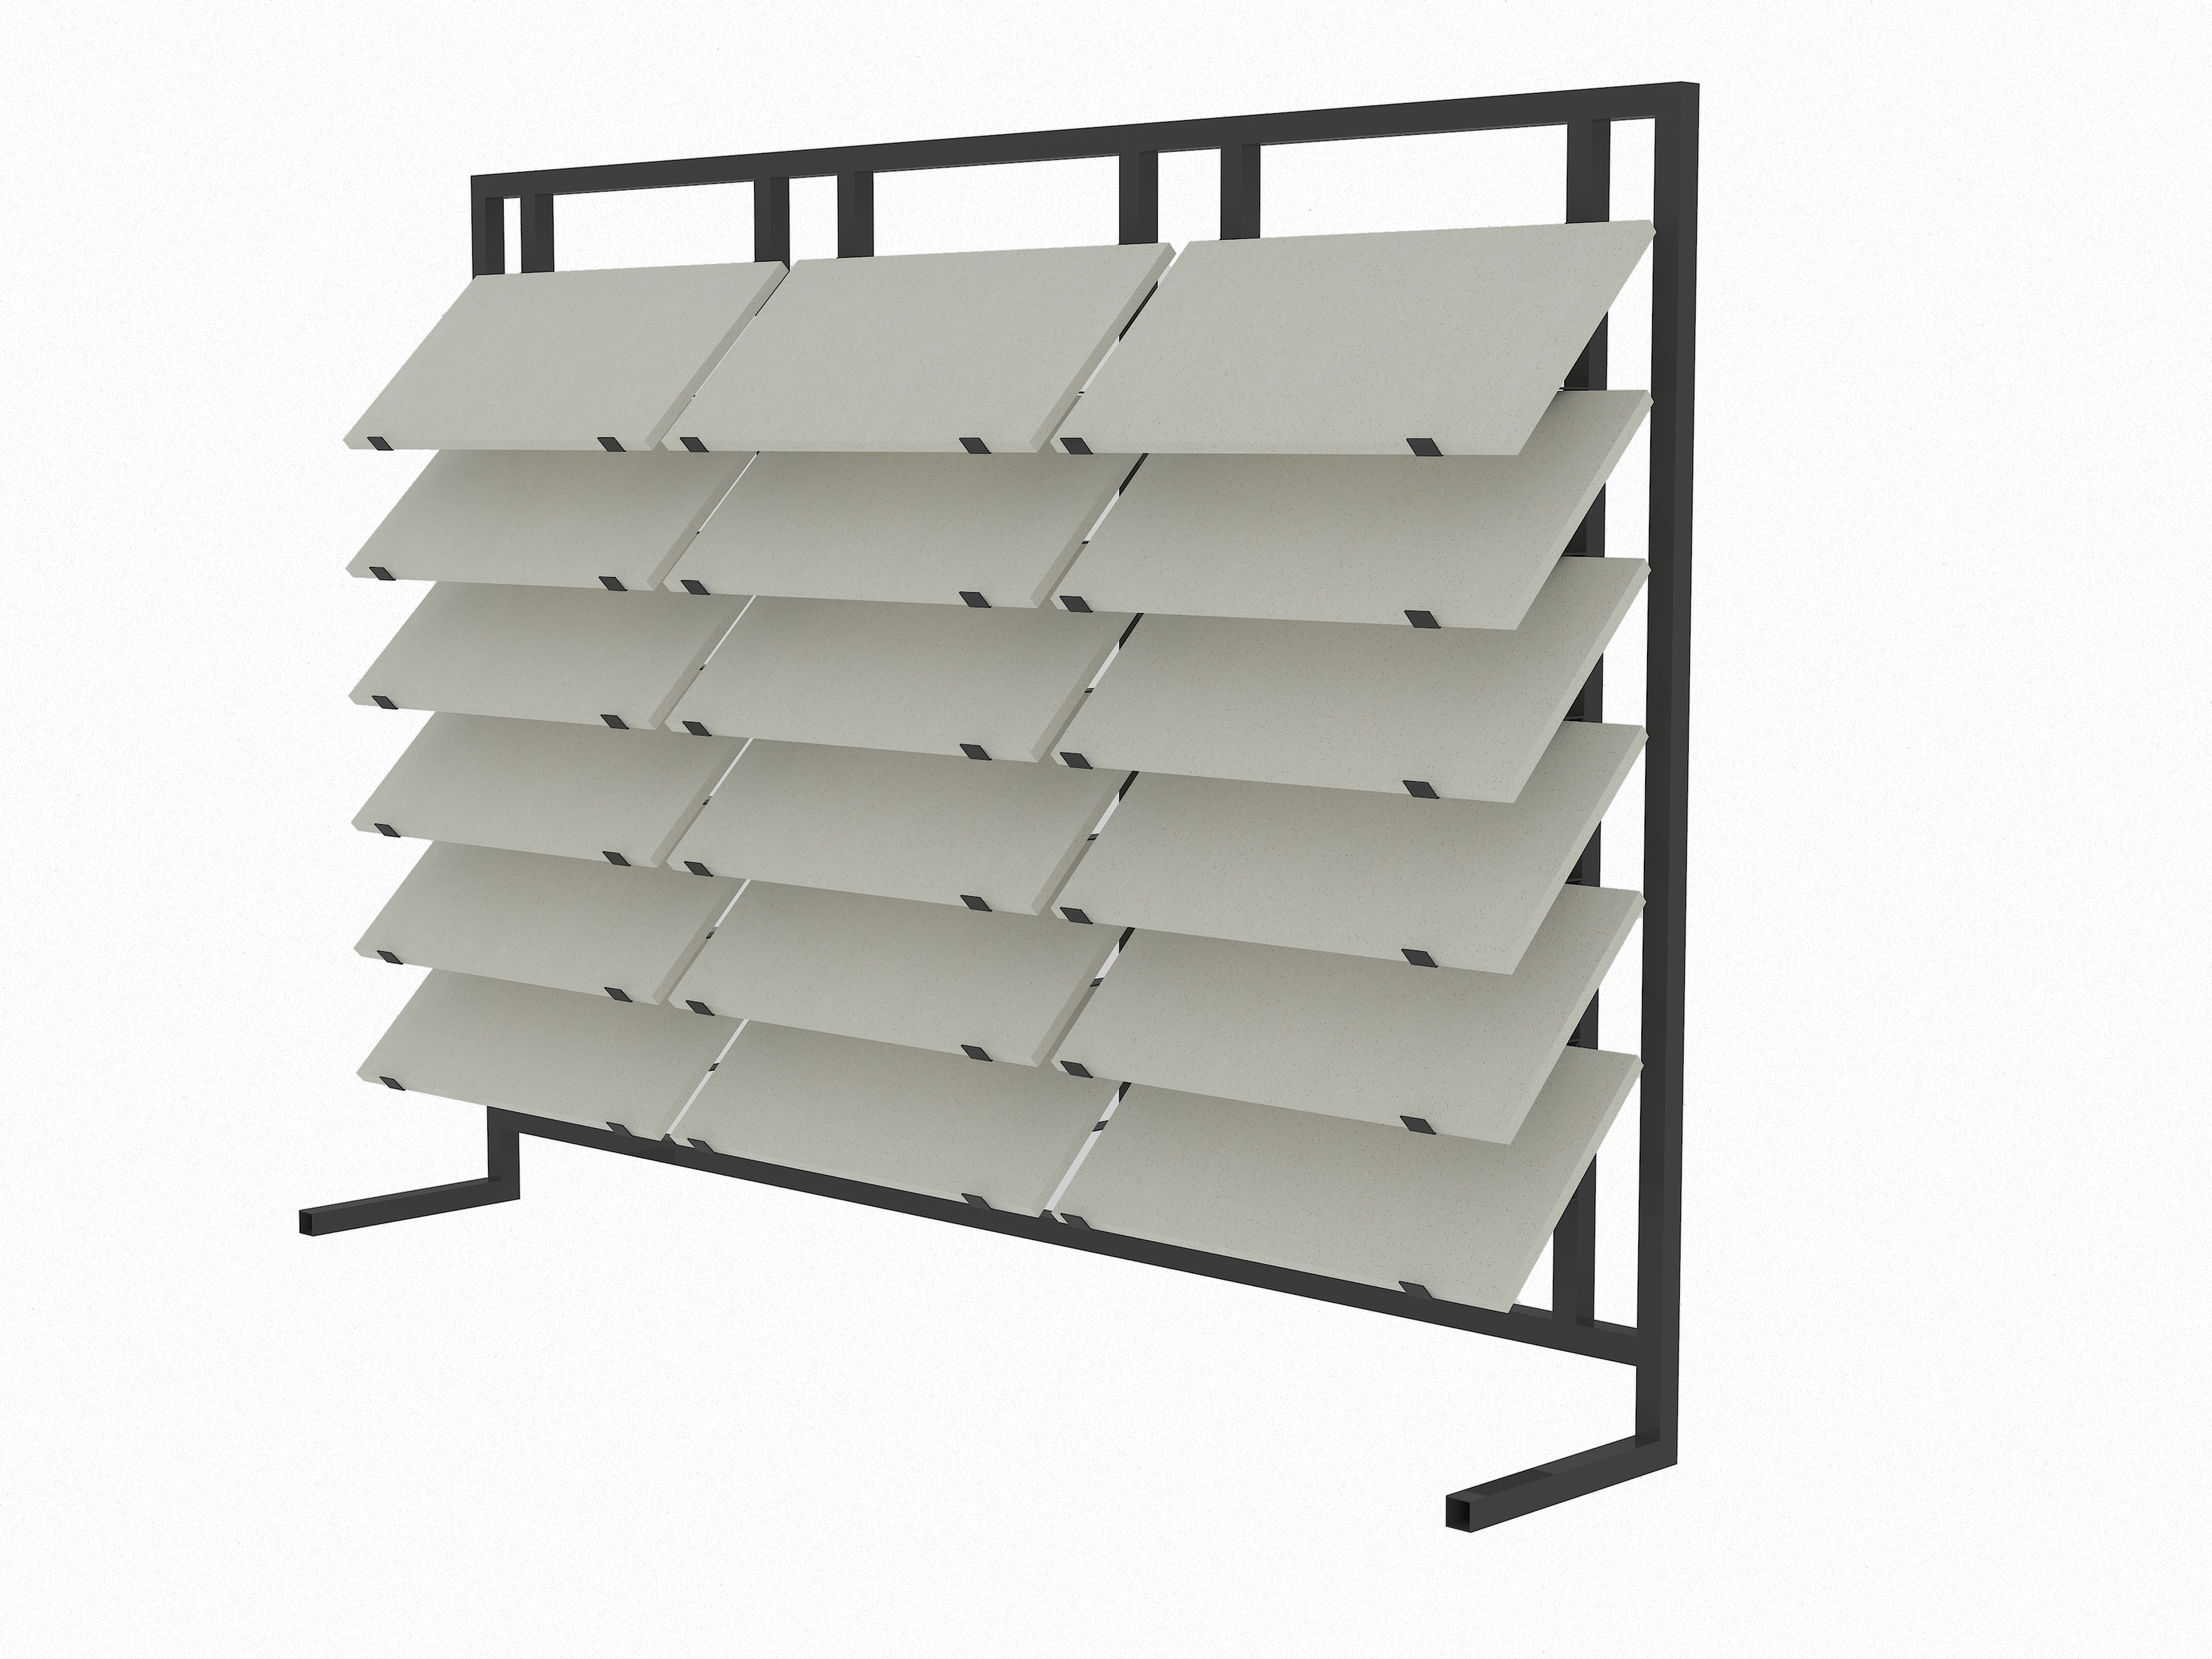 decorative-tile-display-stand-for-granite-and-marble-ST-19-2